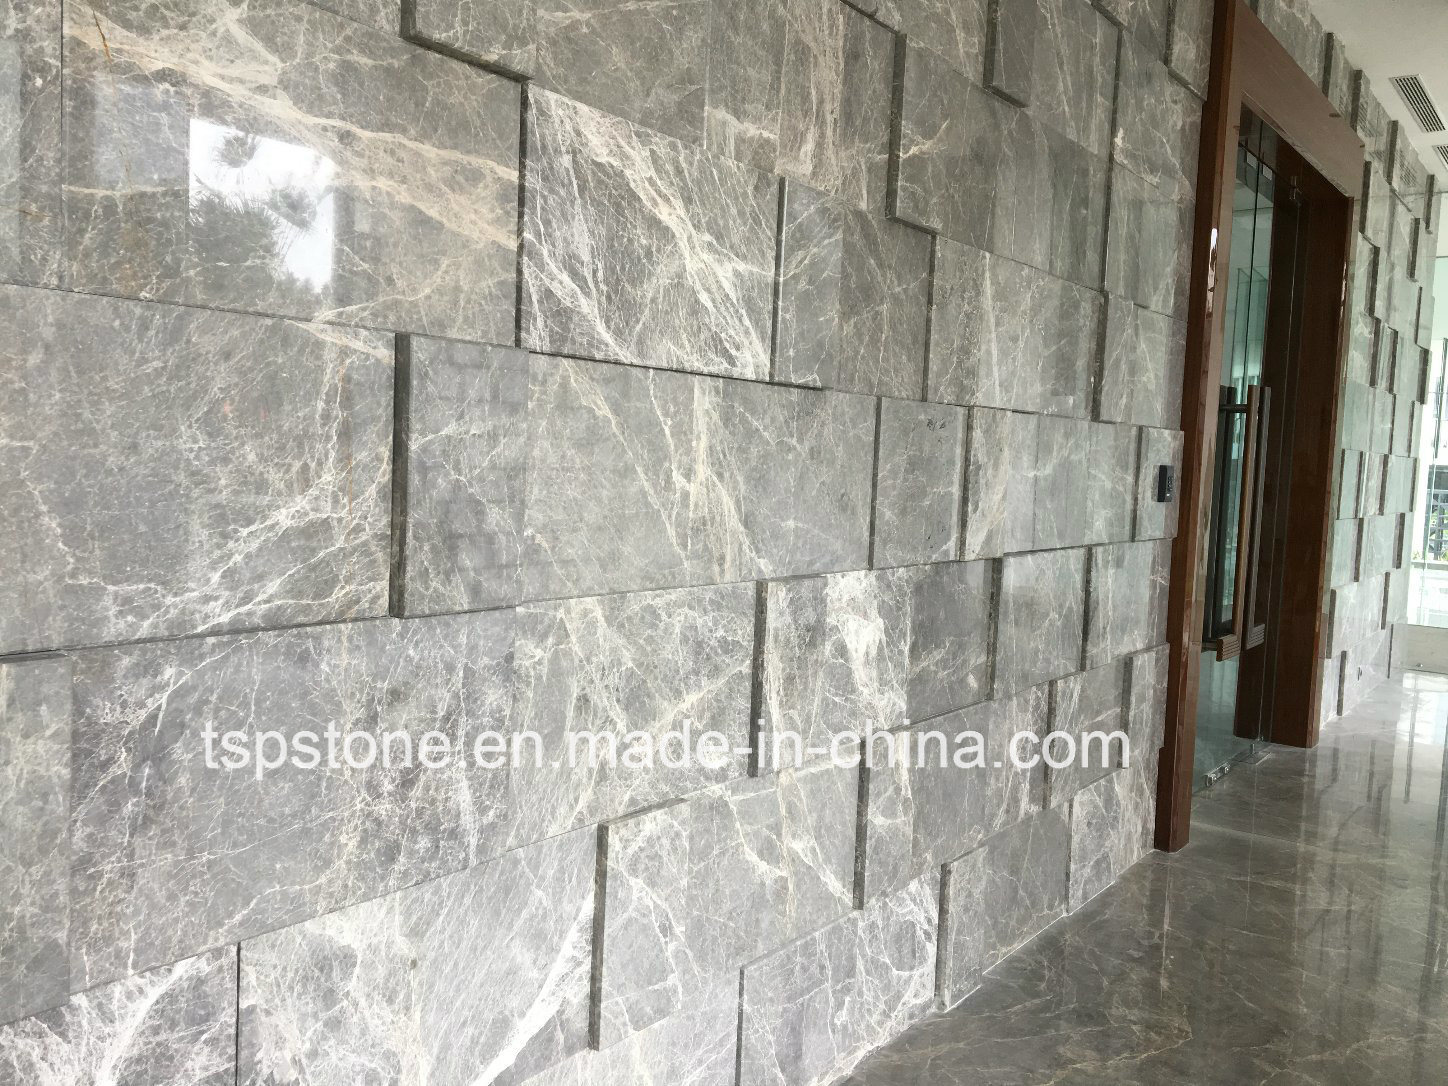 China Selected Building Material Stone Marble Slab for Flooring ...